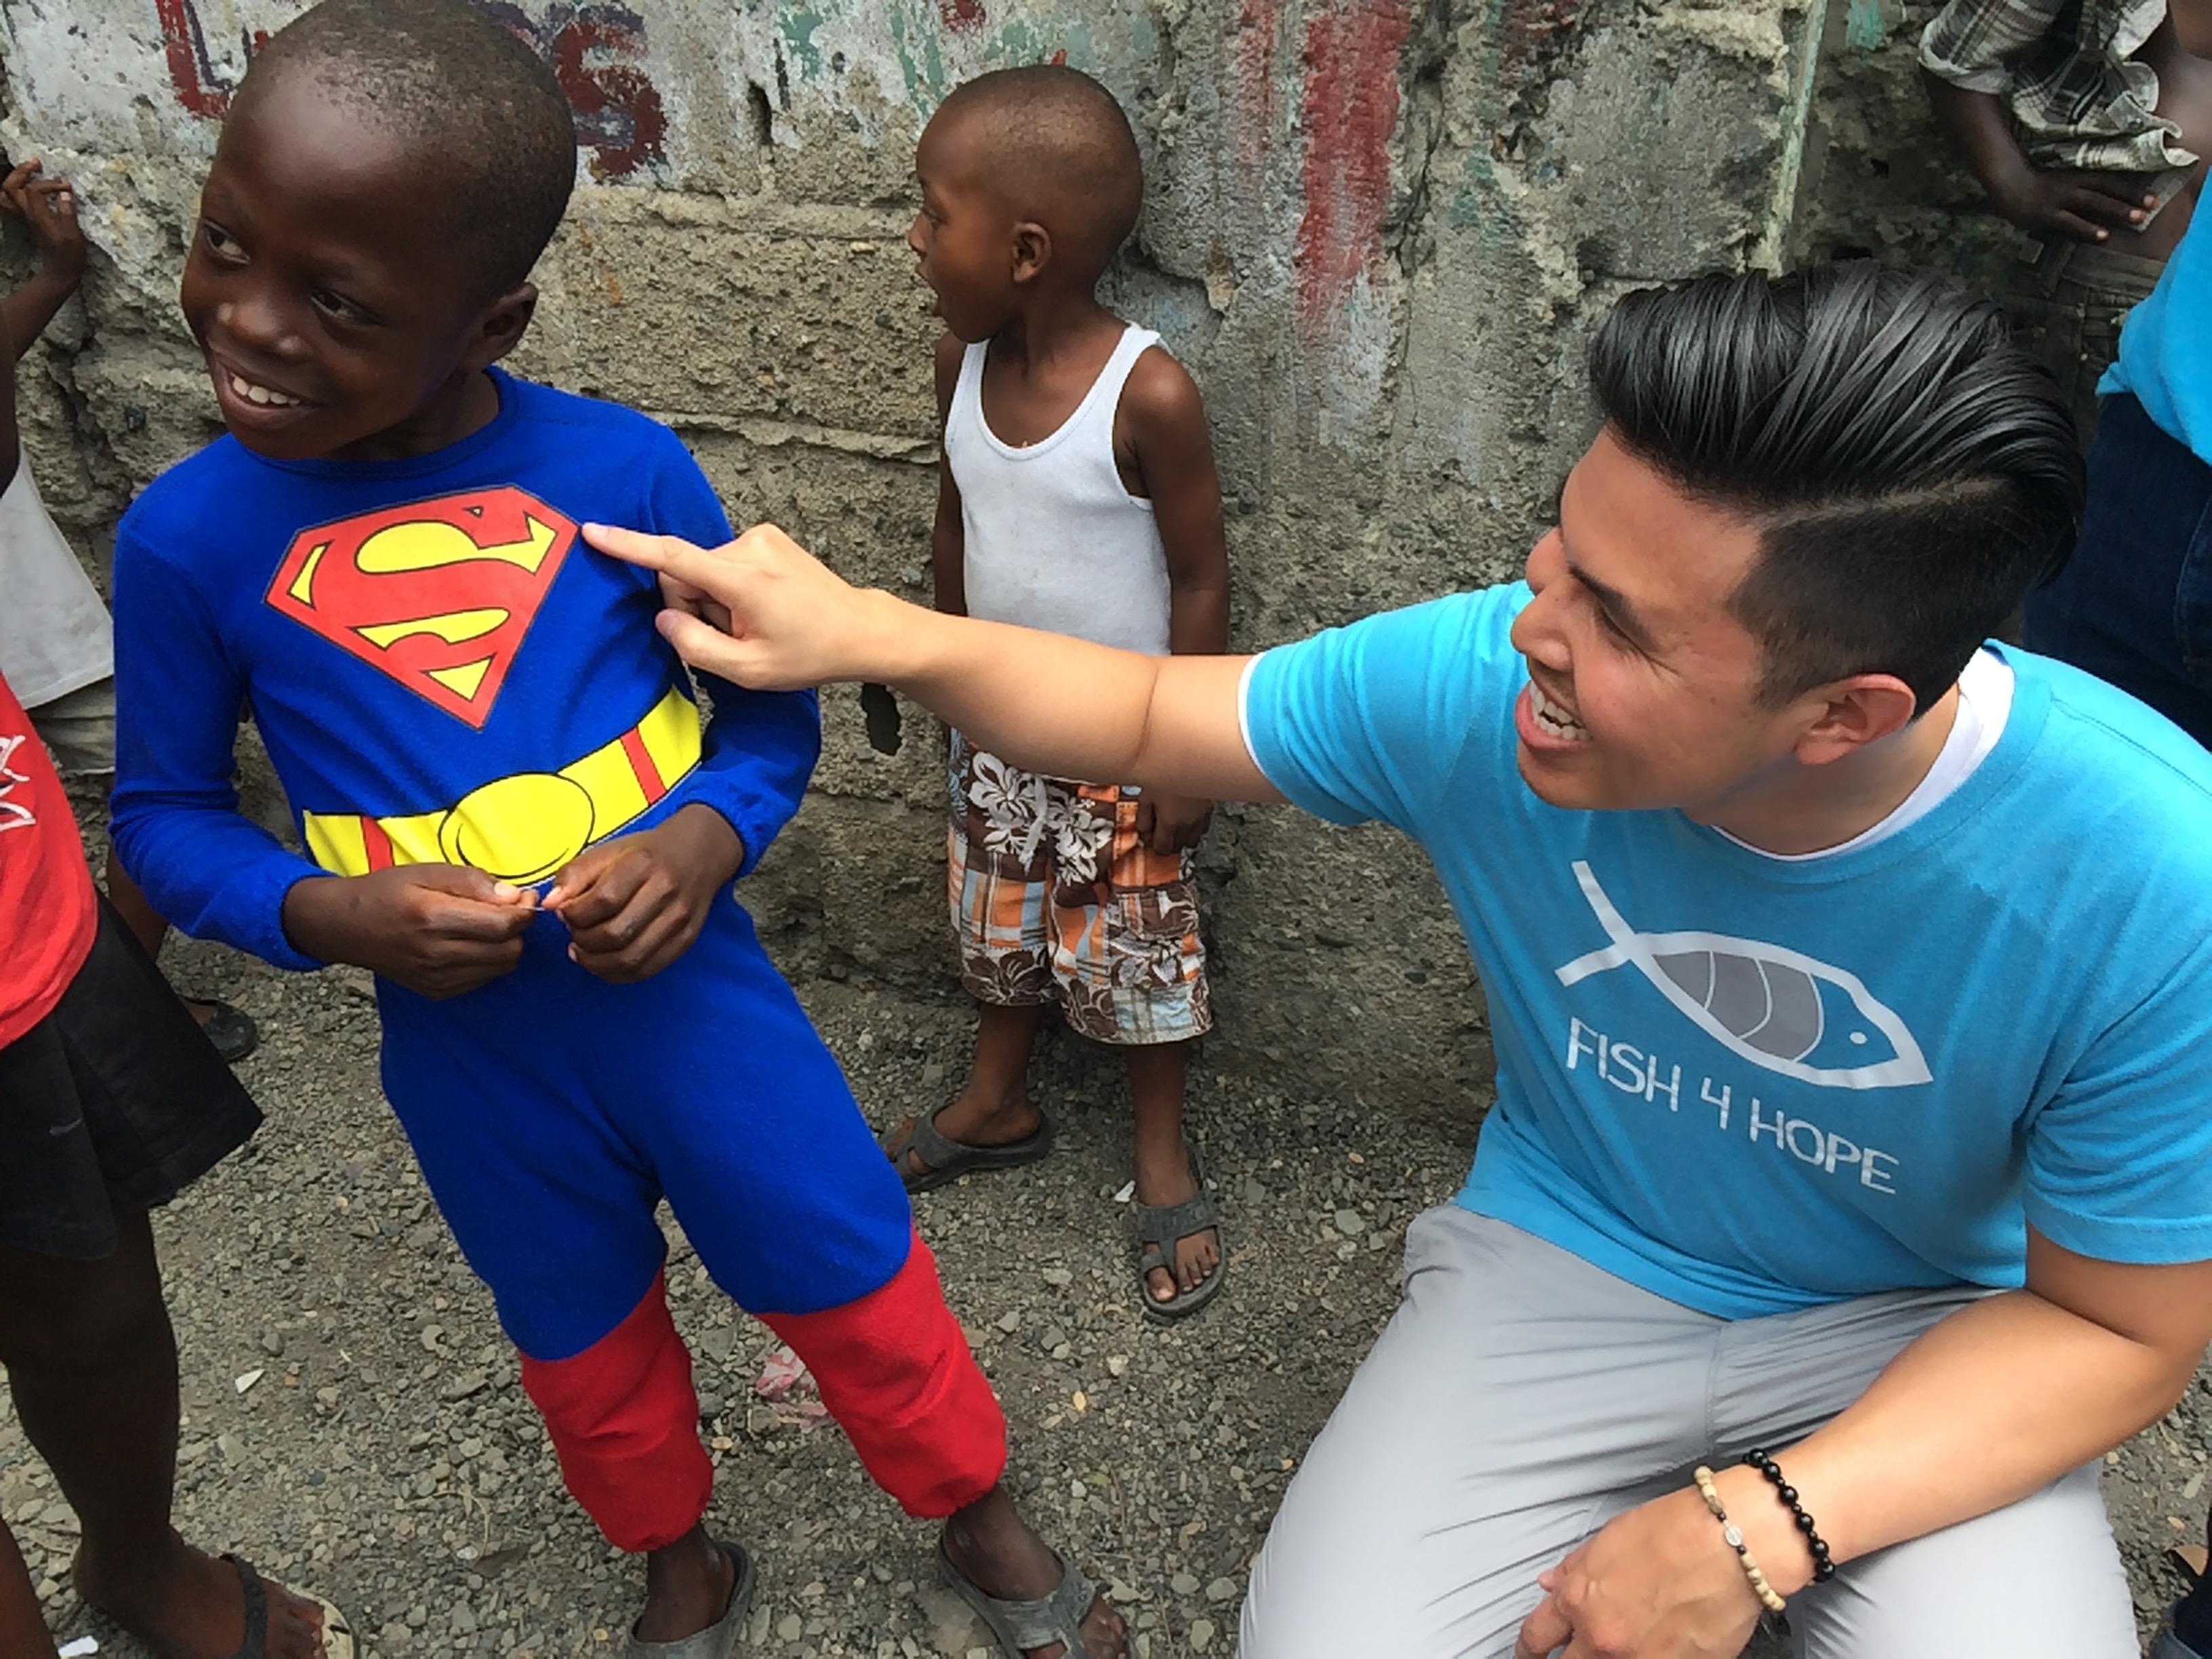 Fish4Hope co-founder Vin poses with Superman